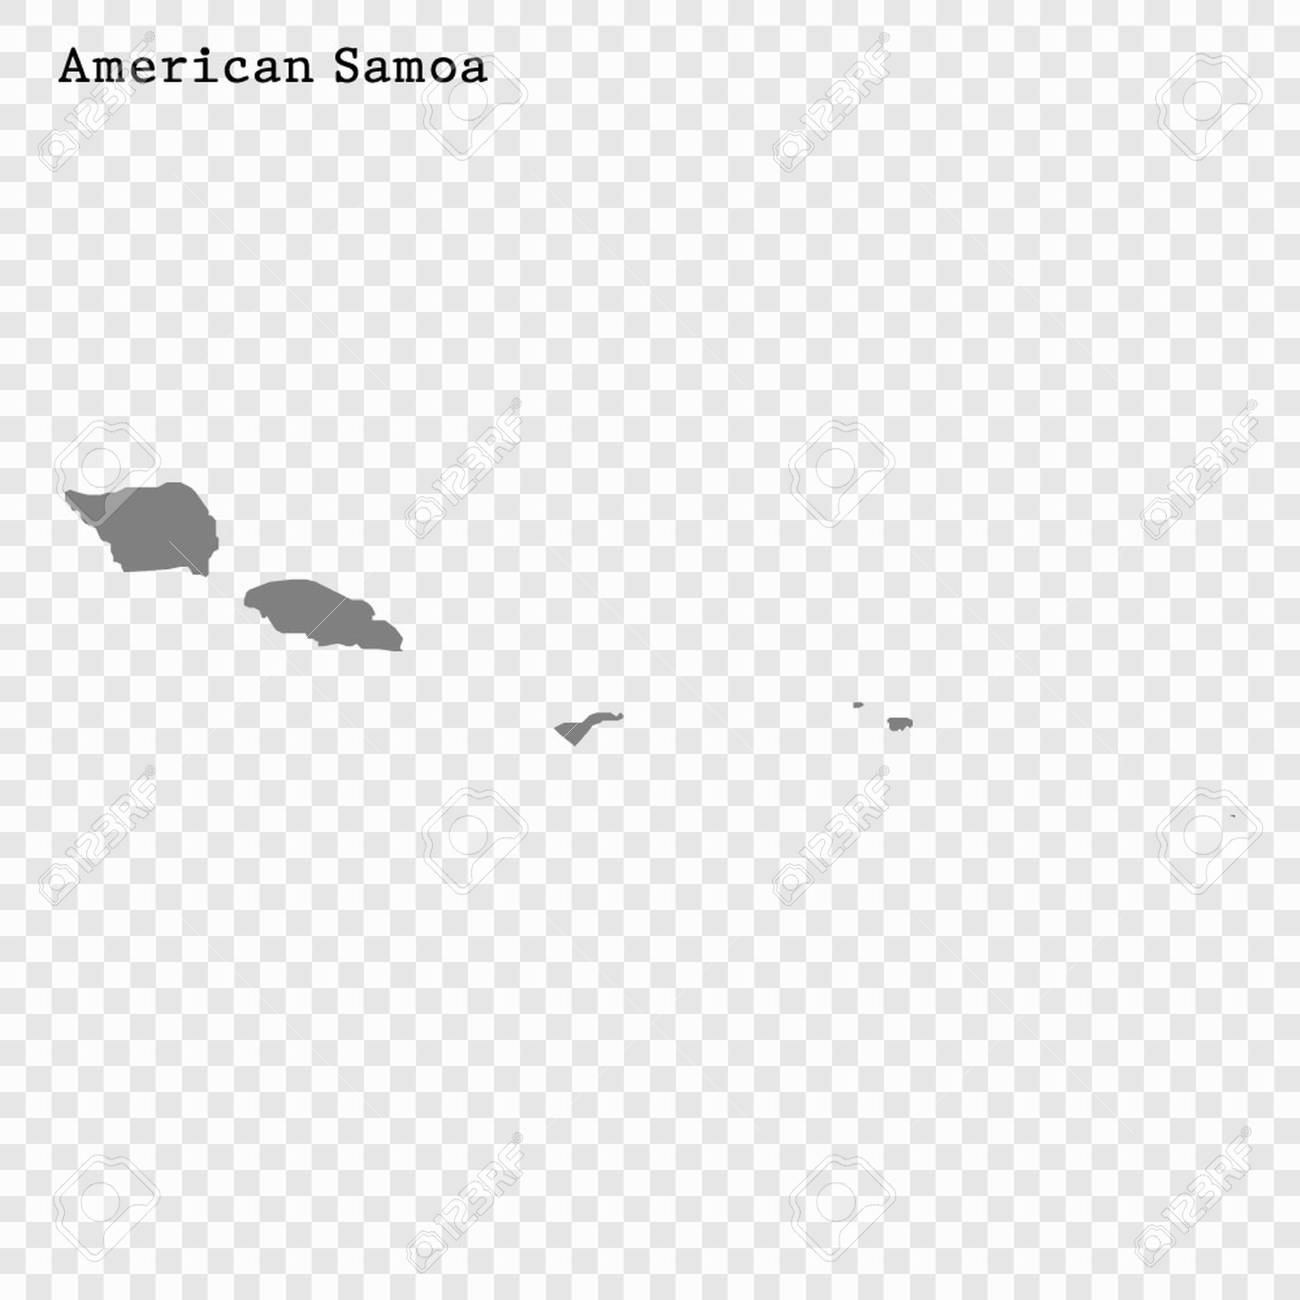 High Quality map of American Samoa is a state of United States.. on alabama insect, virginia insect, maryland insect, arizona insect, north carolina insect, animal insect, montana insect, oklahoma insect, connecticut insect, louisiana insect, new york insect, tennessee insect, ohio insect, new mexico insect, colorado insect, wisconsin insect, washington insect, missouri insect, hawaii insect, utah insect,